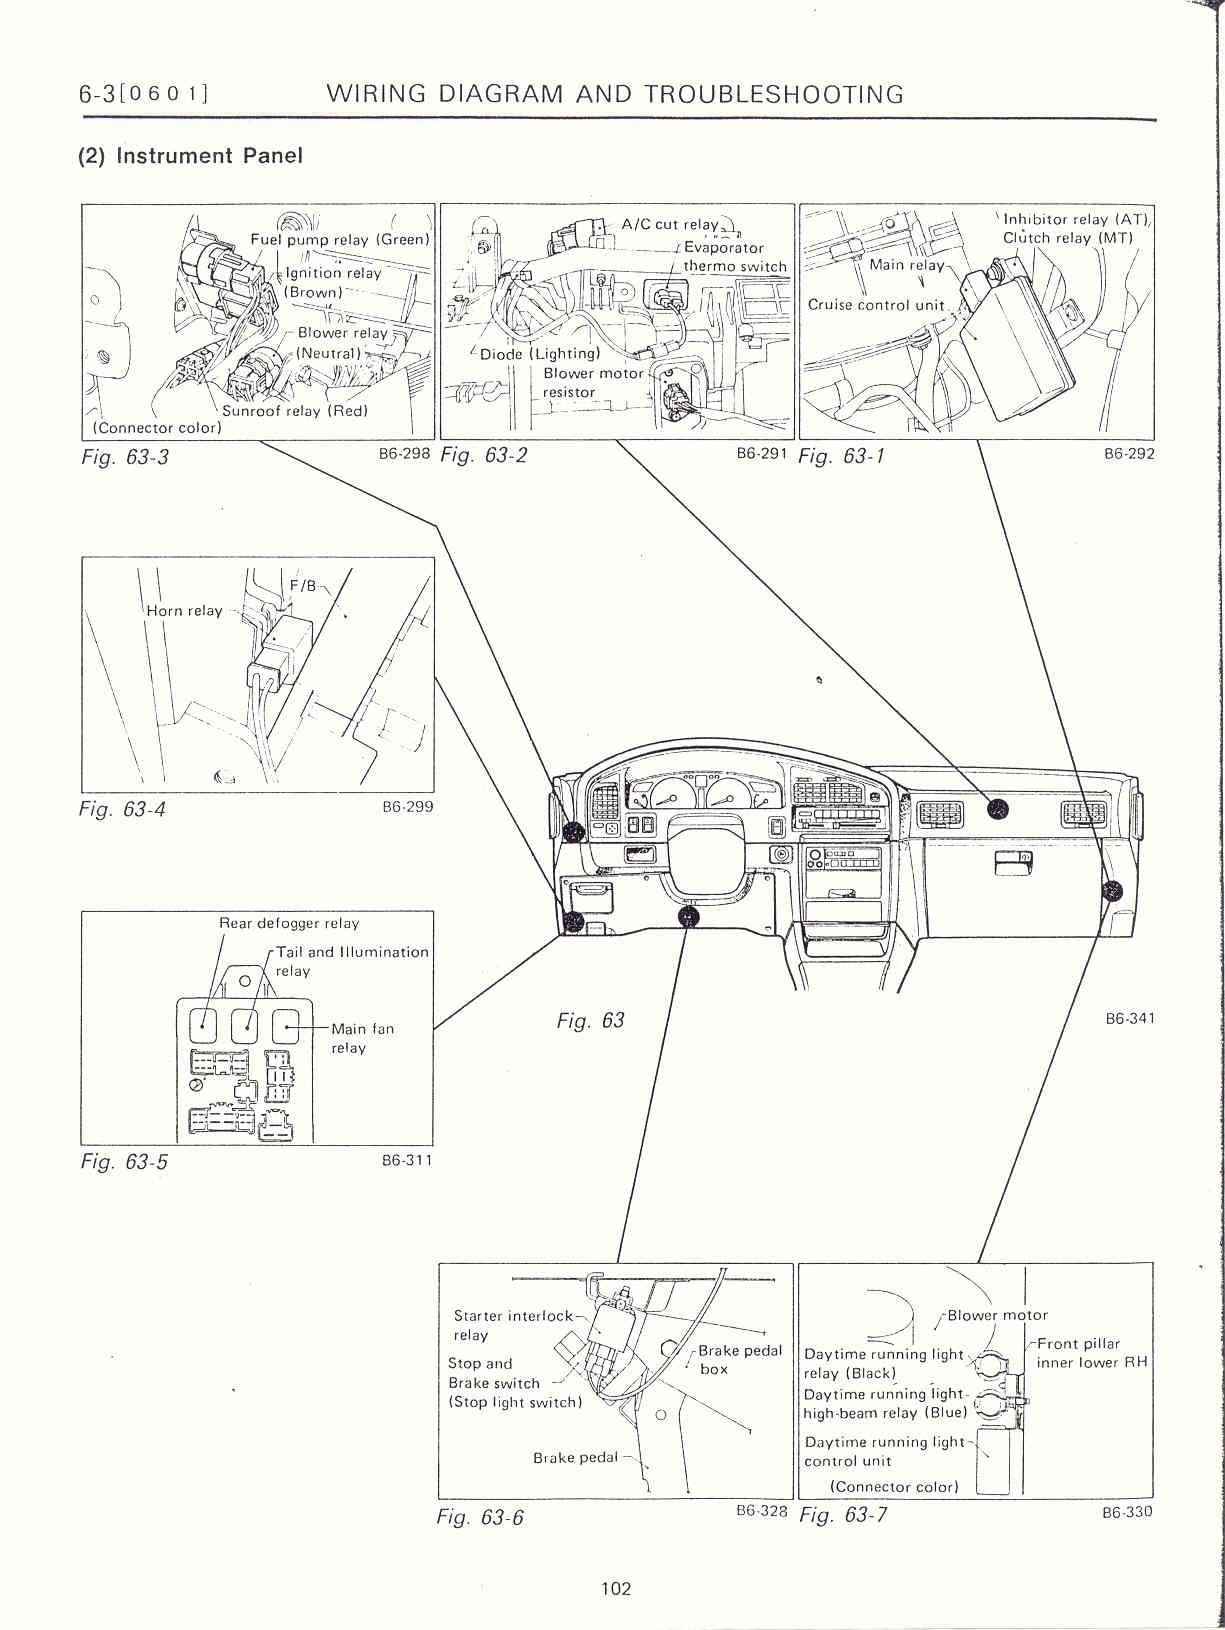 surrealmirage subaru legacy swap electrical info notes 1997 Subaru Legacy Green instrument panel